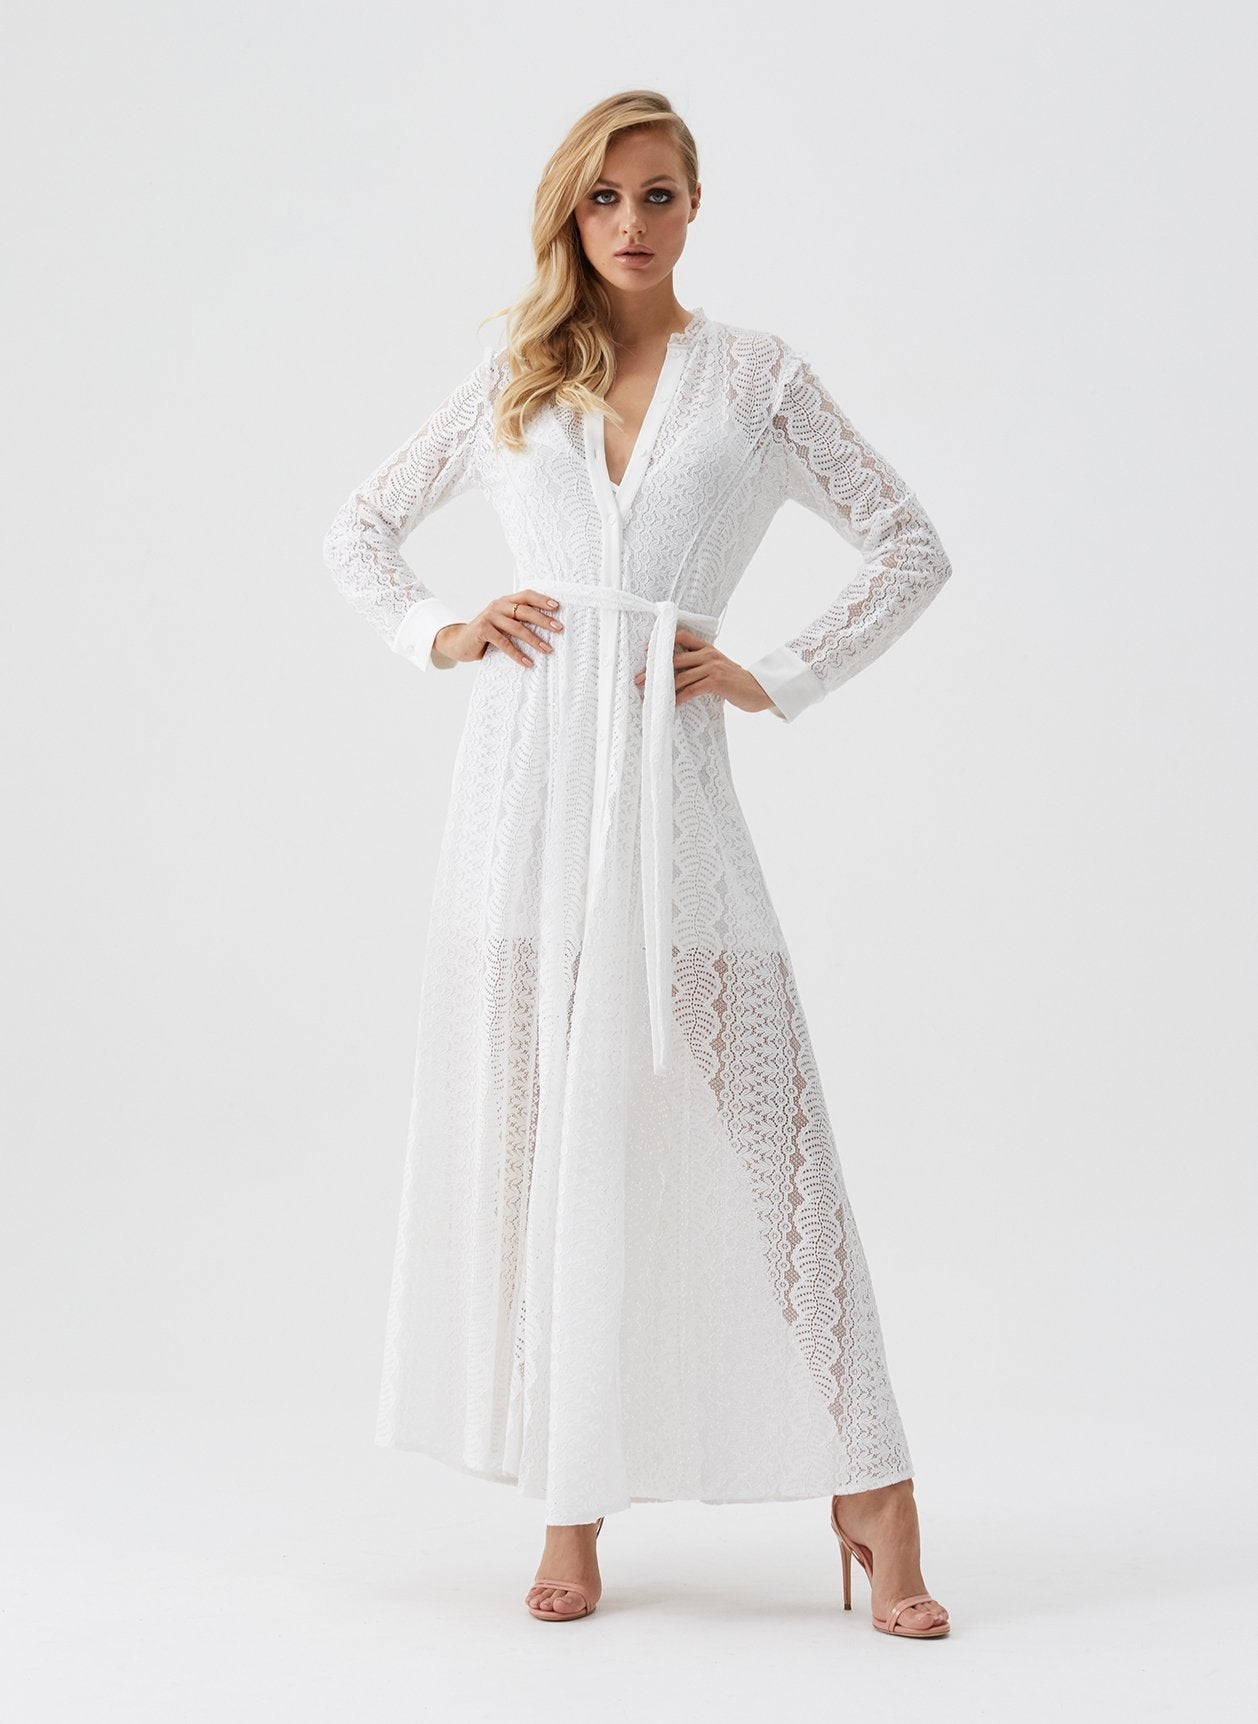 Leila White Lace Shirt Maxi Dress